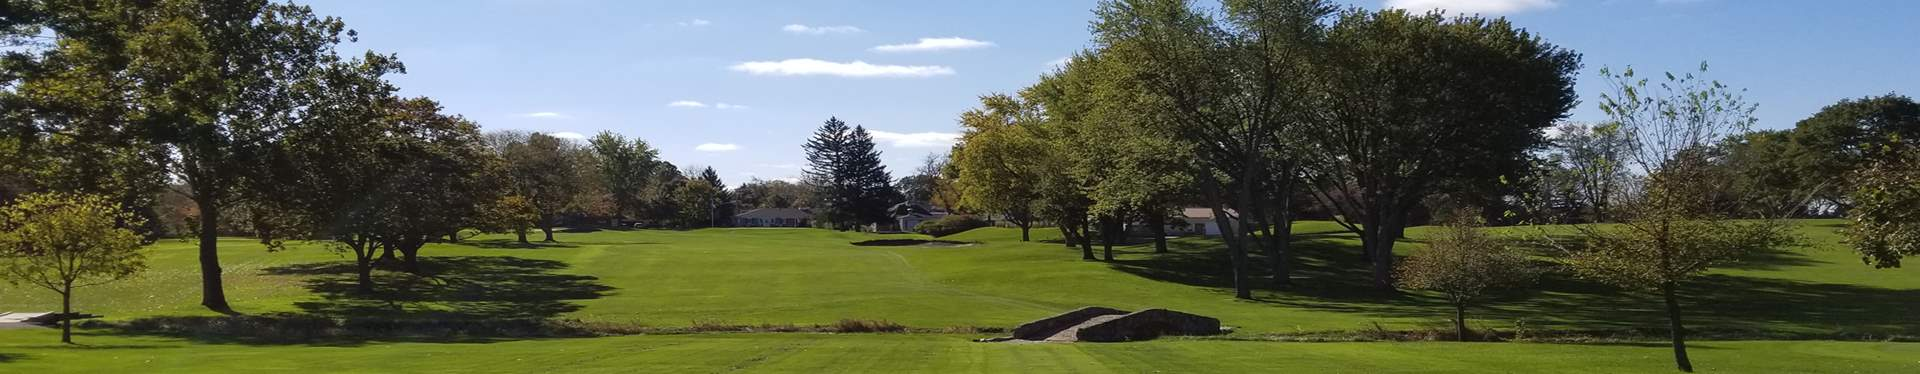 Geneva golf course